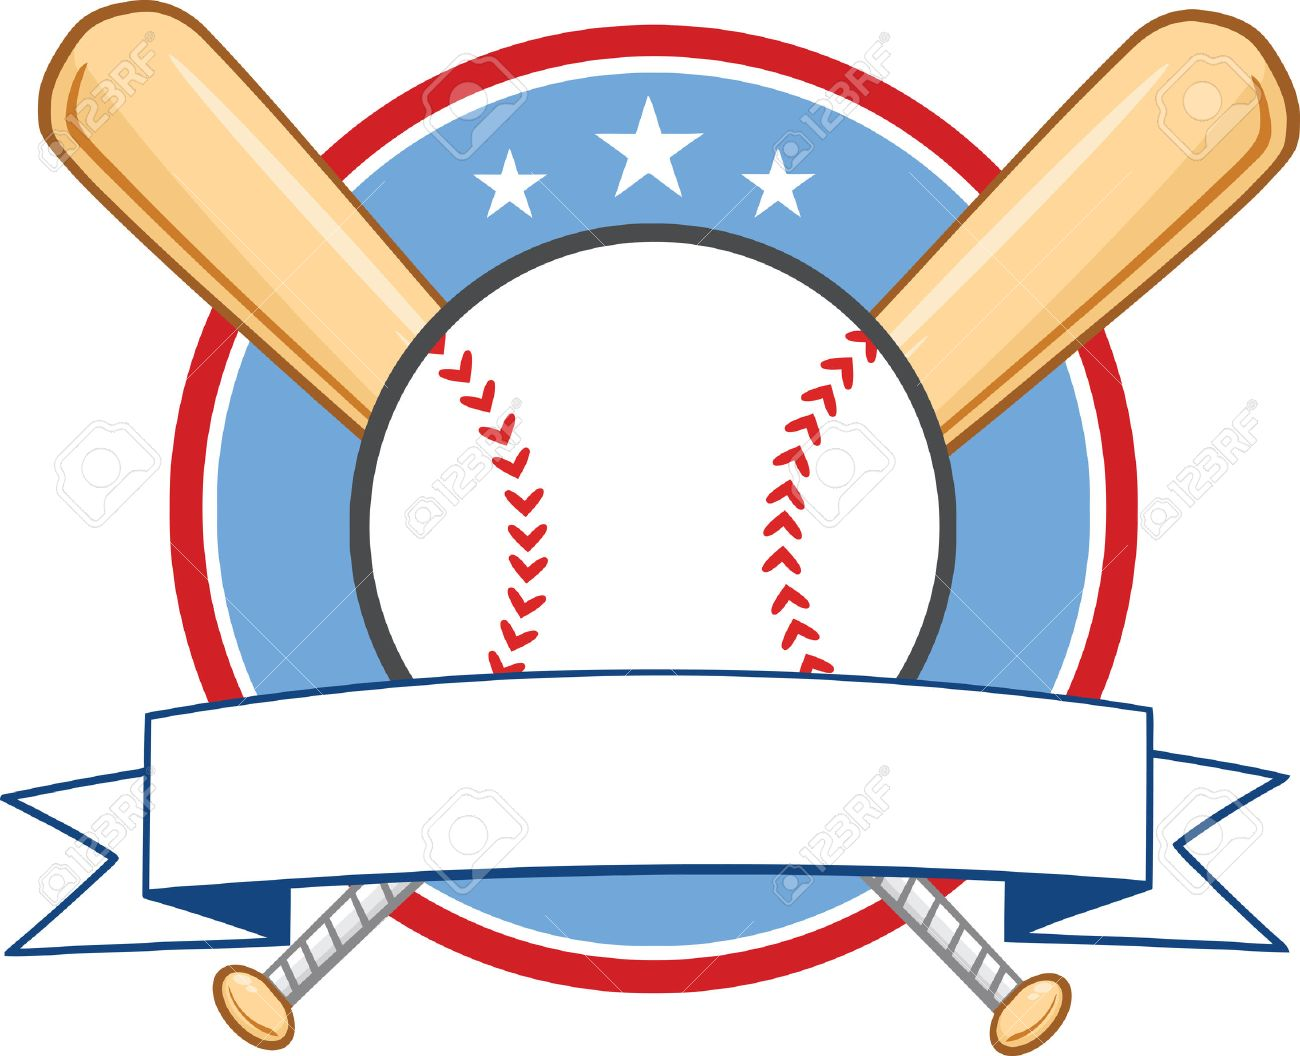 baseball banner with two bats and ball illustration isolated rh 123rf com Baseball Bat Grip Baseball Bat Border